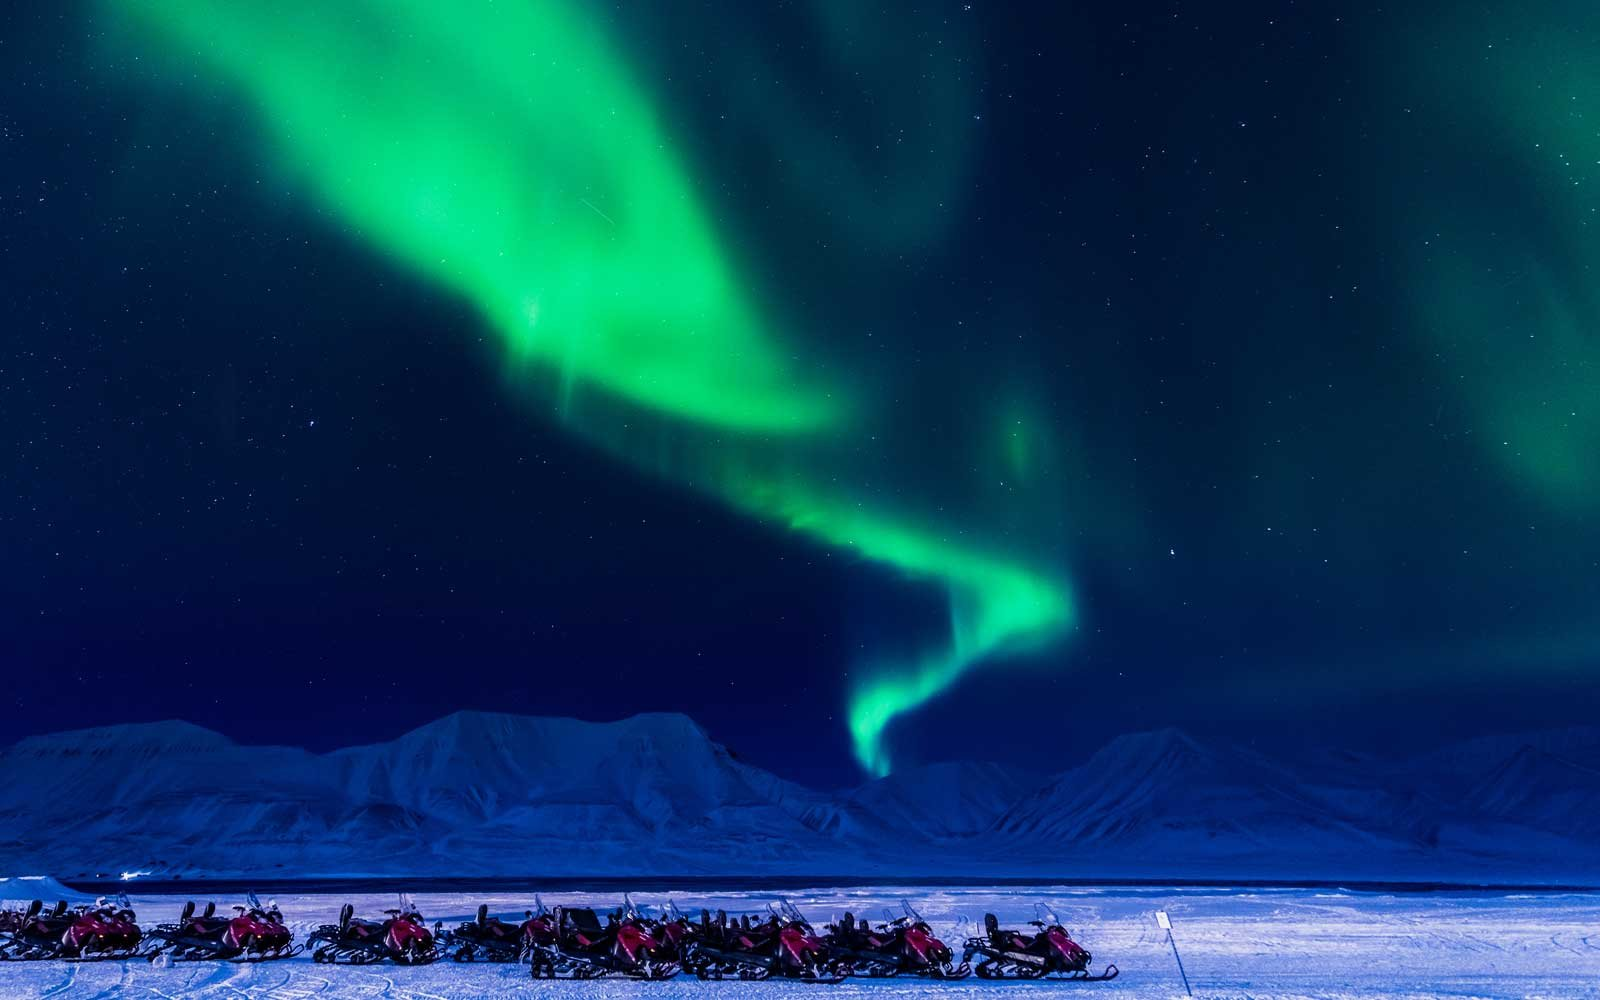 Svalbard is the only inhabited place in the world where you can experience the northern lights during the day.